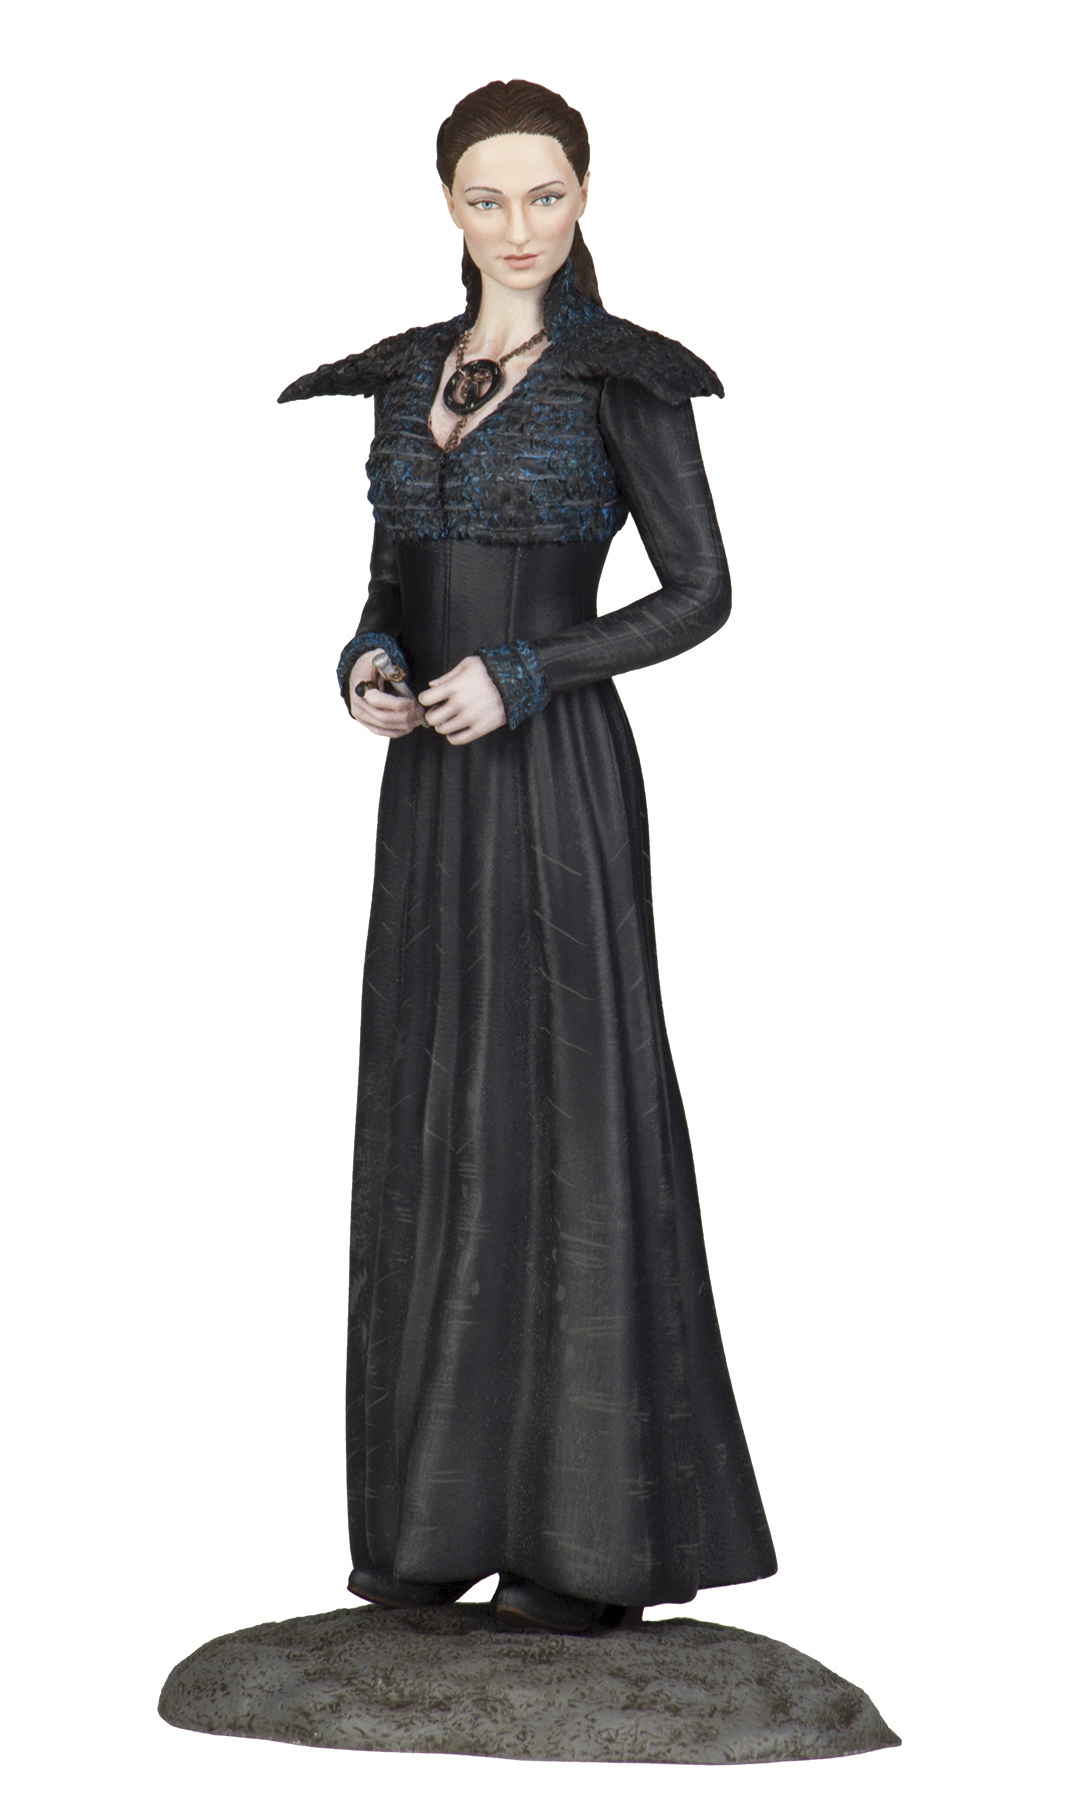 GAME OF THRONES FIGURE SANSA STARK